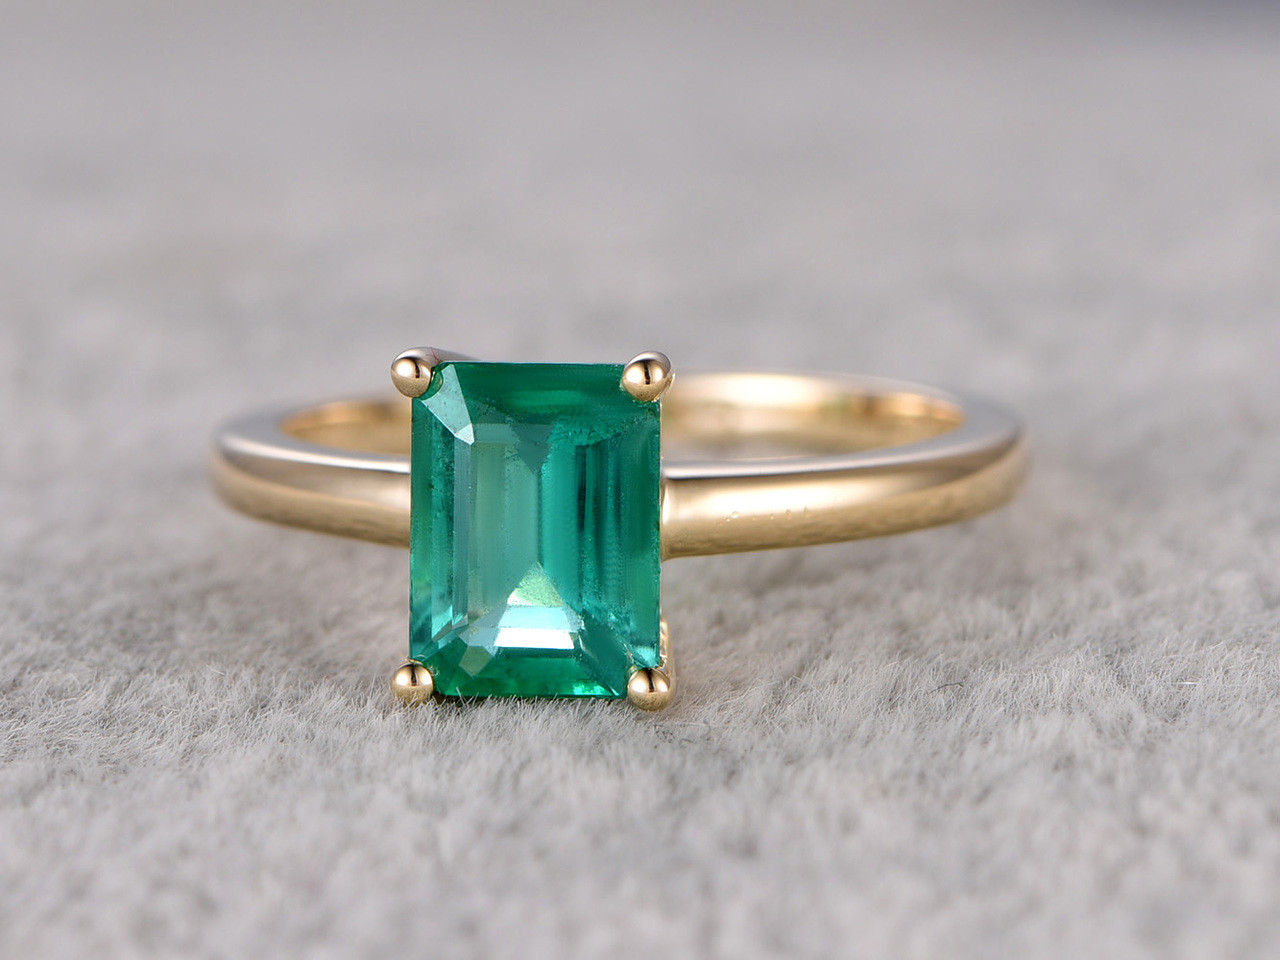 6x8mm Emerald Cut Natural Emerald Engagement Ring 14k Yellow Gold